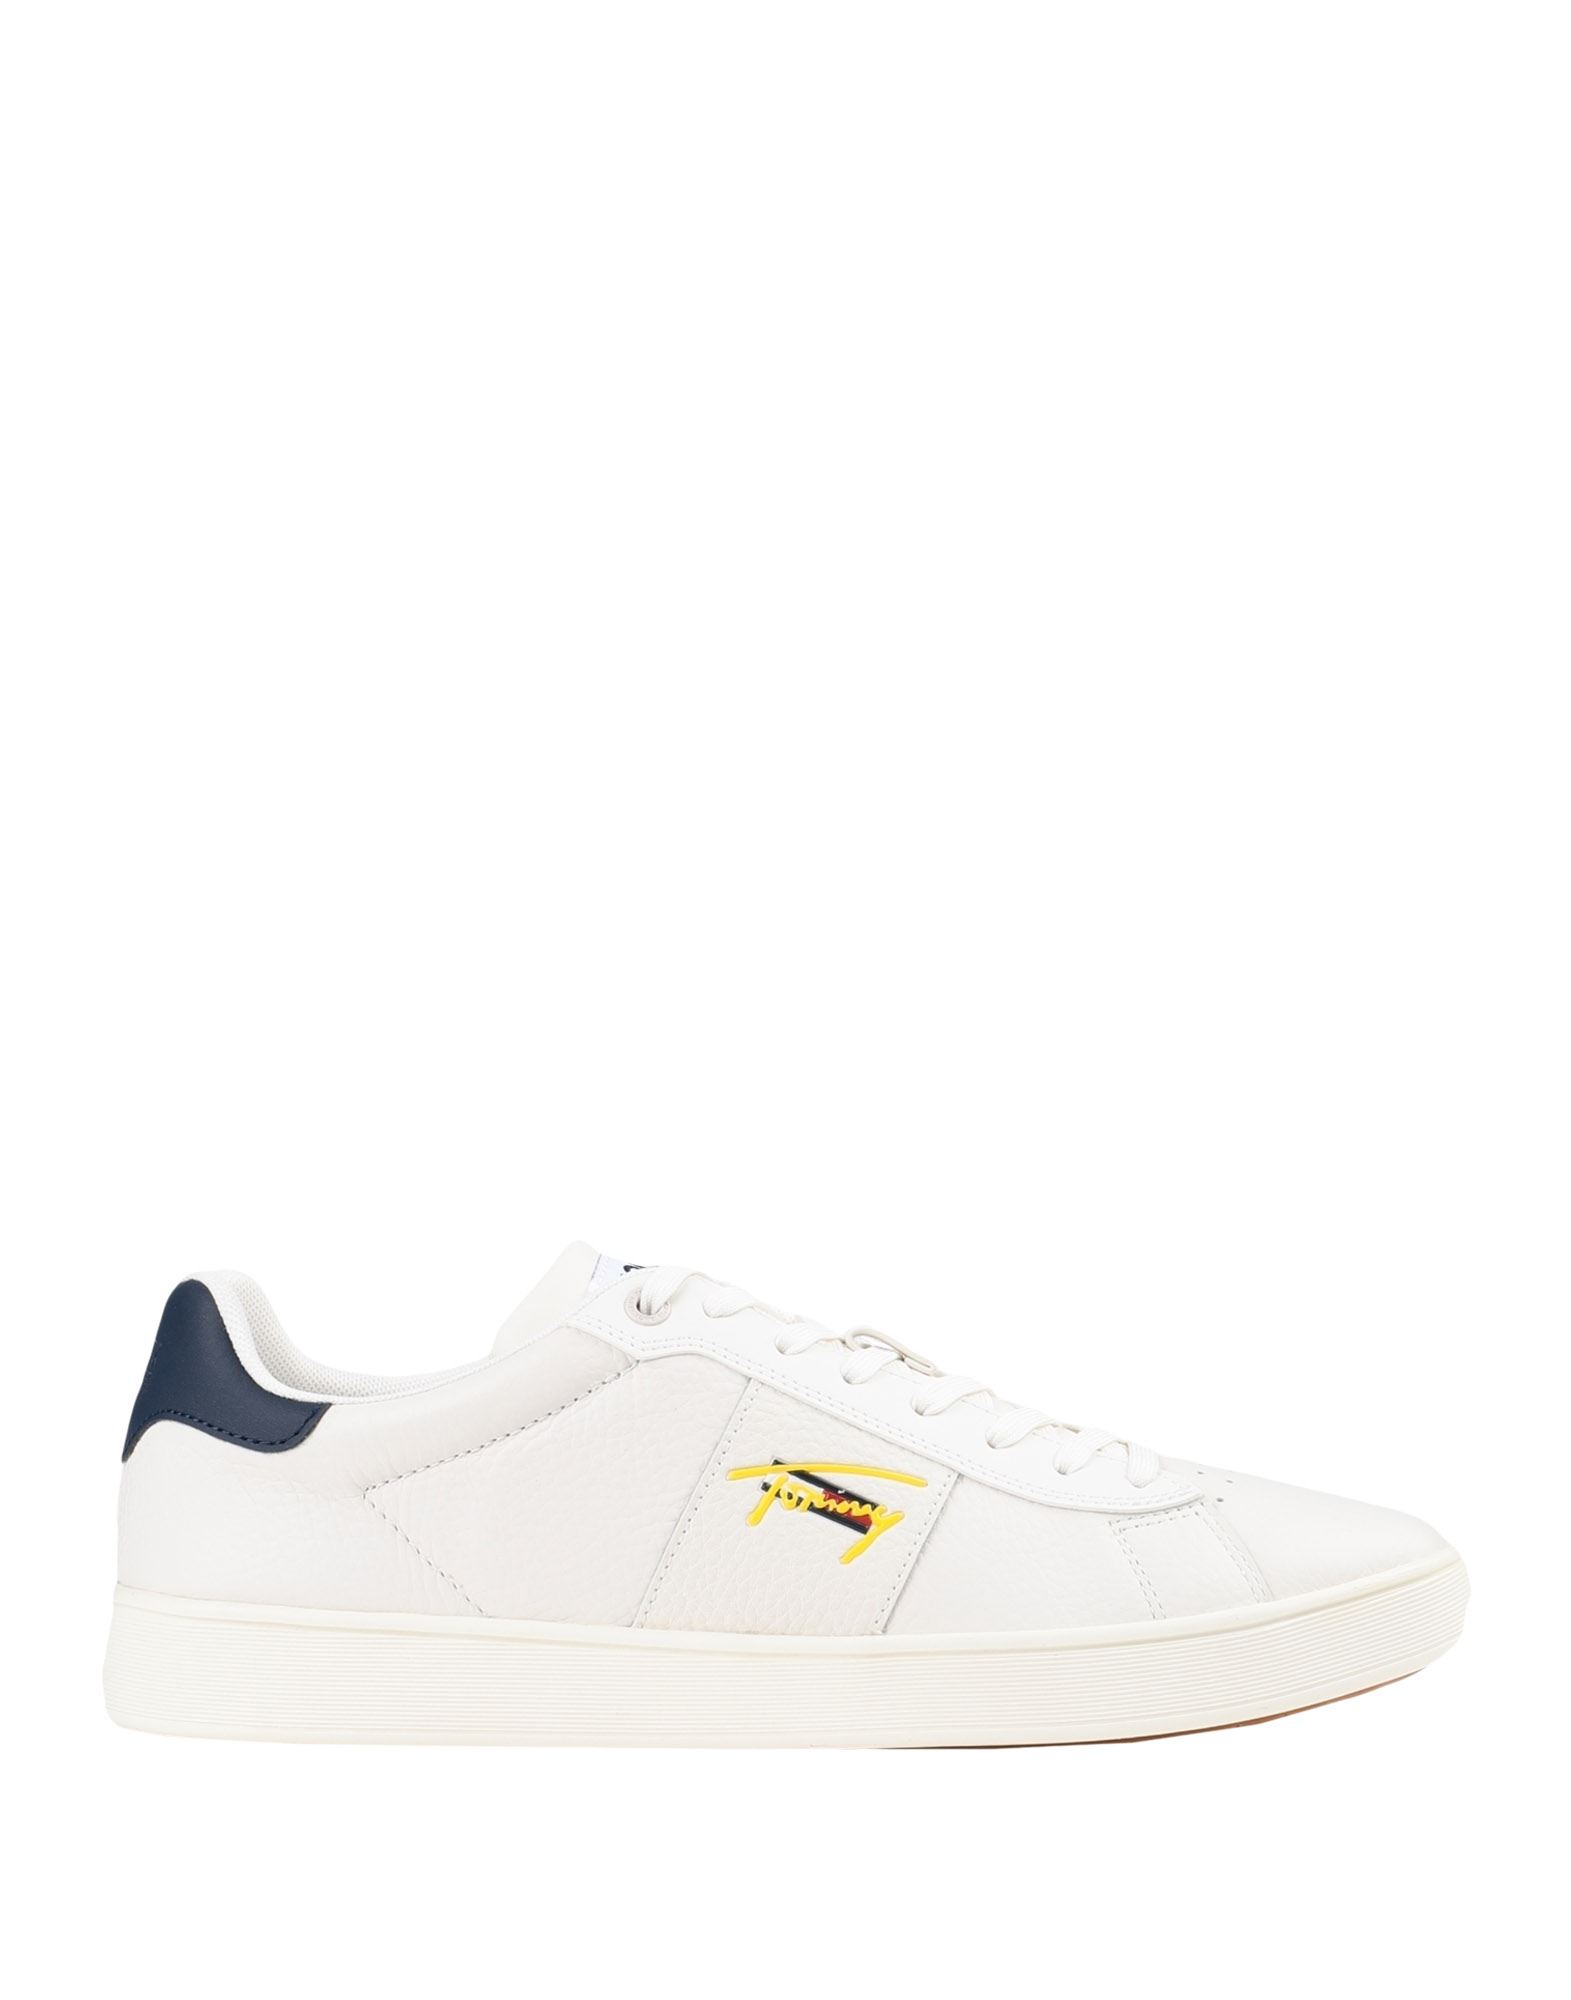 TOMMY JEANS メンズ スニーカー CUPSOLE TJM LEATHER SNEAKERS アイボリー